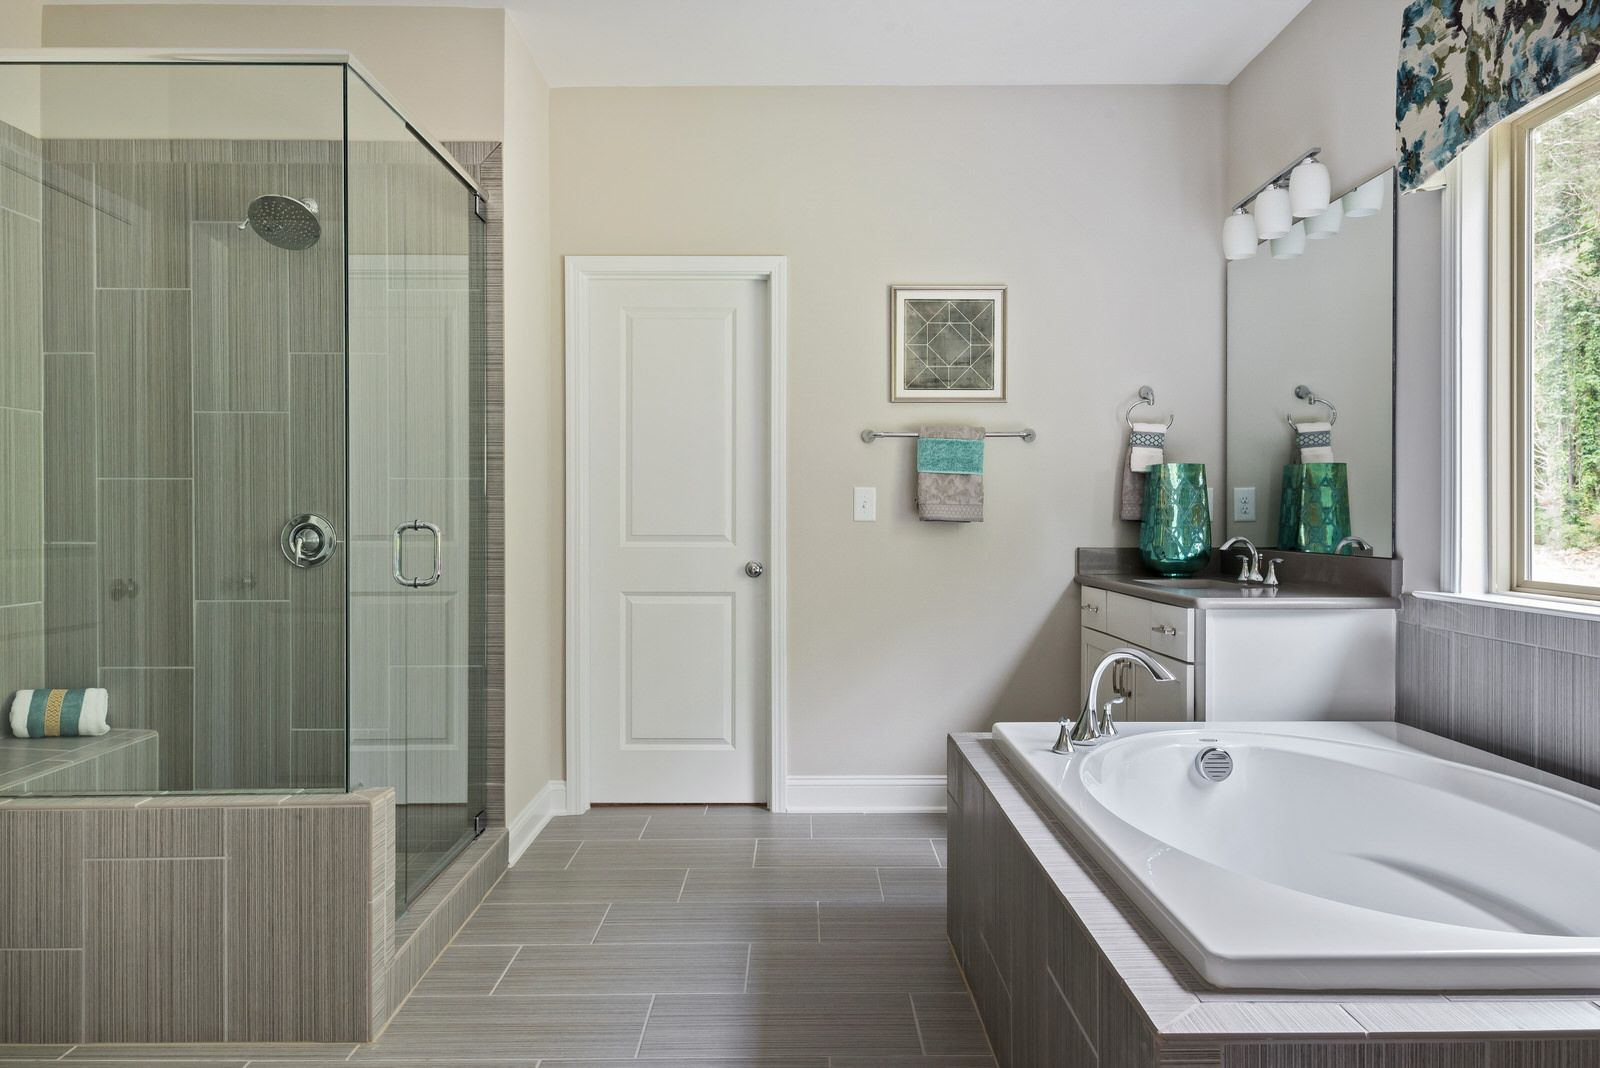 Bathroom featured in the Essex II By Taylor Morrison in Charlotte, NC